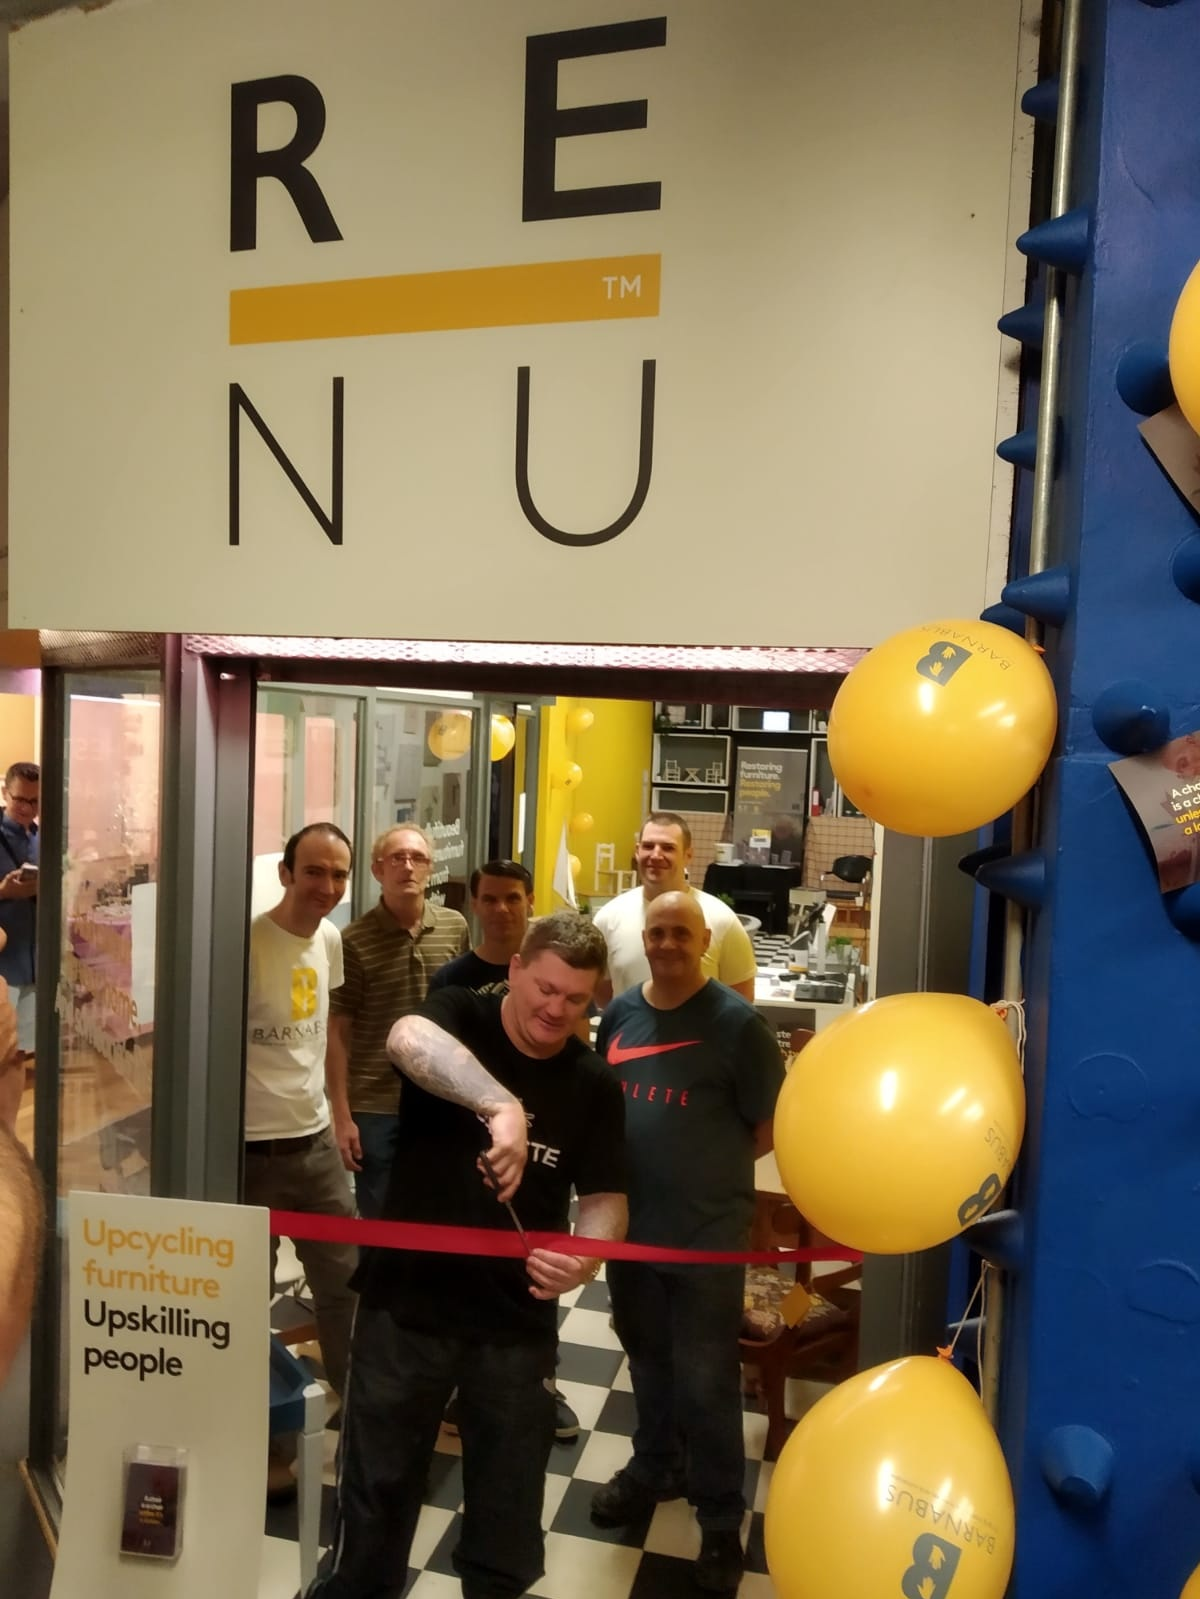 """Ricky Hatton cuts the ribbon - This is the moment Ricky Hatton opened the RENU shop for business. Ricky has been a patron and great supporter of Barnabus for many years now, it was brilliant to have him come down and support us as we launched the RENU shop in Affleck's.Neil Cornthwaite, head of operations at Barnabus, said """"Tackling homelessness requires much more than giving someone a roof over their head, it's about giving them the skills and confidence to adjust to life off the streets. Here at Barnabus we have found RENU to be an important piece of the puzzle and it has had some great successes helping people back into work.""""The RENU pop-up shop in Affleck's Palace can be found on the second floor just to the left of the Oldham Street staircase opposite the Soapy J Bathbomb shop."""